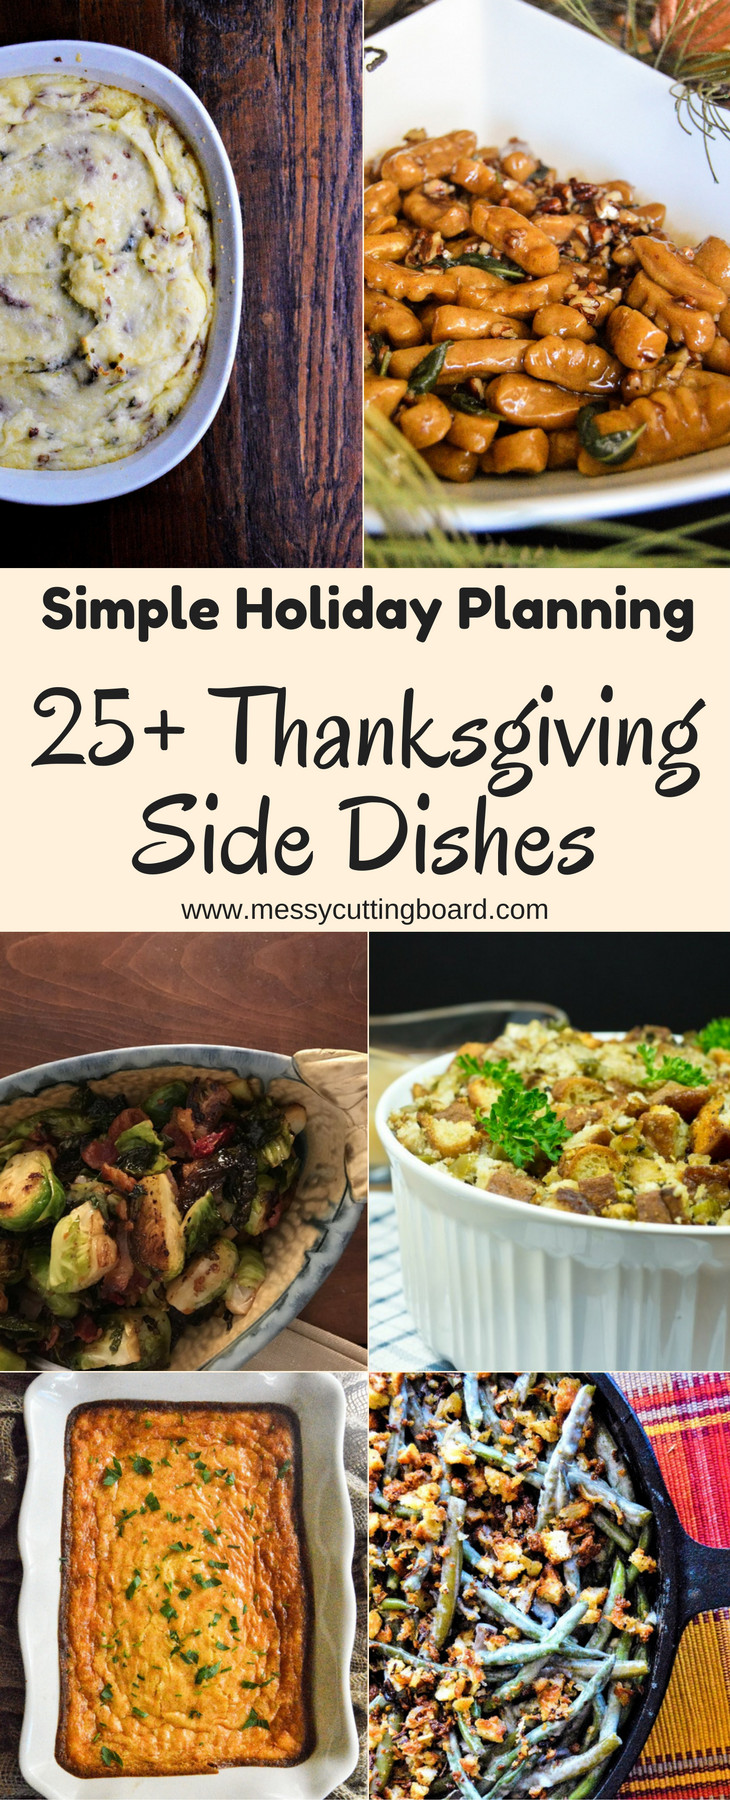 Gravy Thanksgiving Side Dishes  The Ultimate List of Thanksgiving Side Dishes Messy